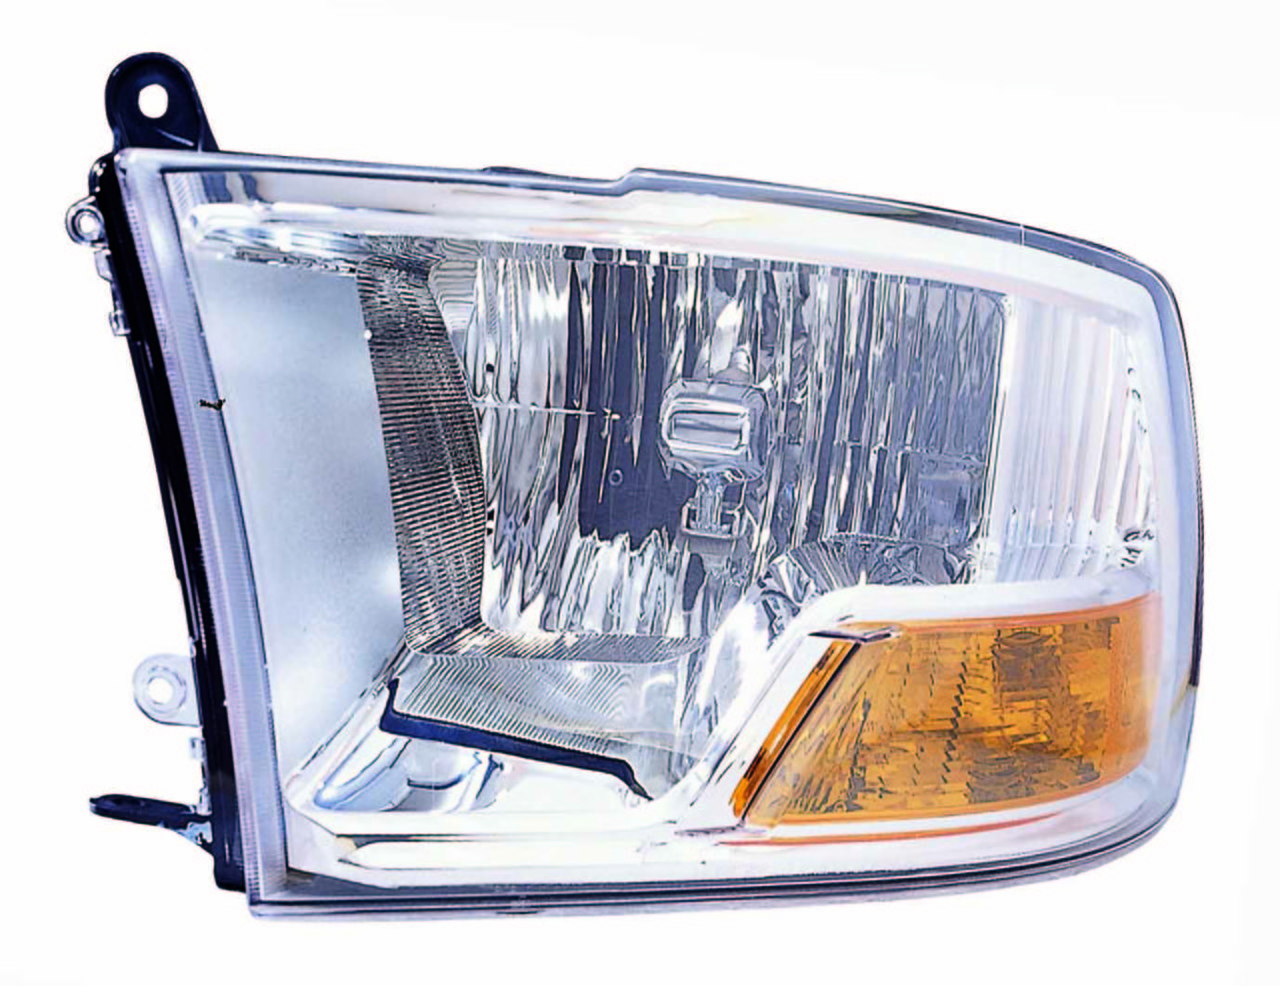 Dodge RAM 1500/2500/3500 2010 2011 2012 2013 2014 2015 left driver headlight (no quad lamp)